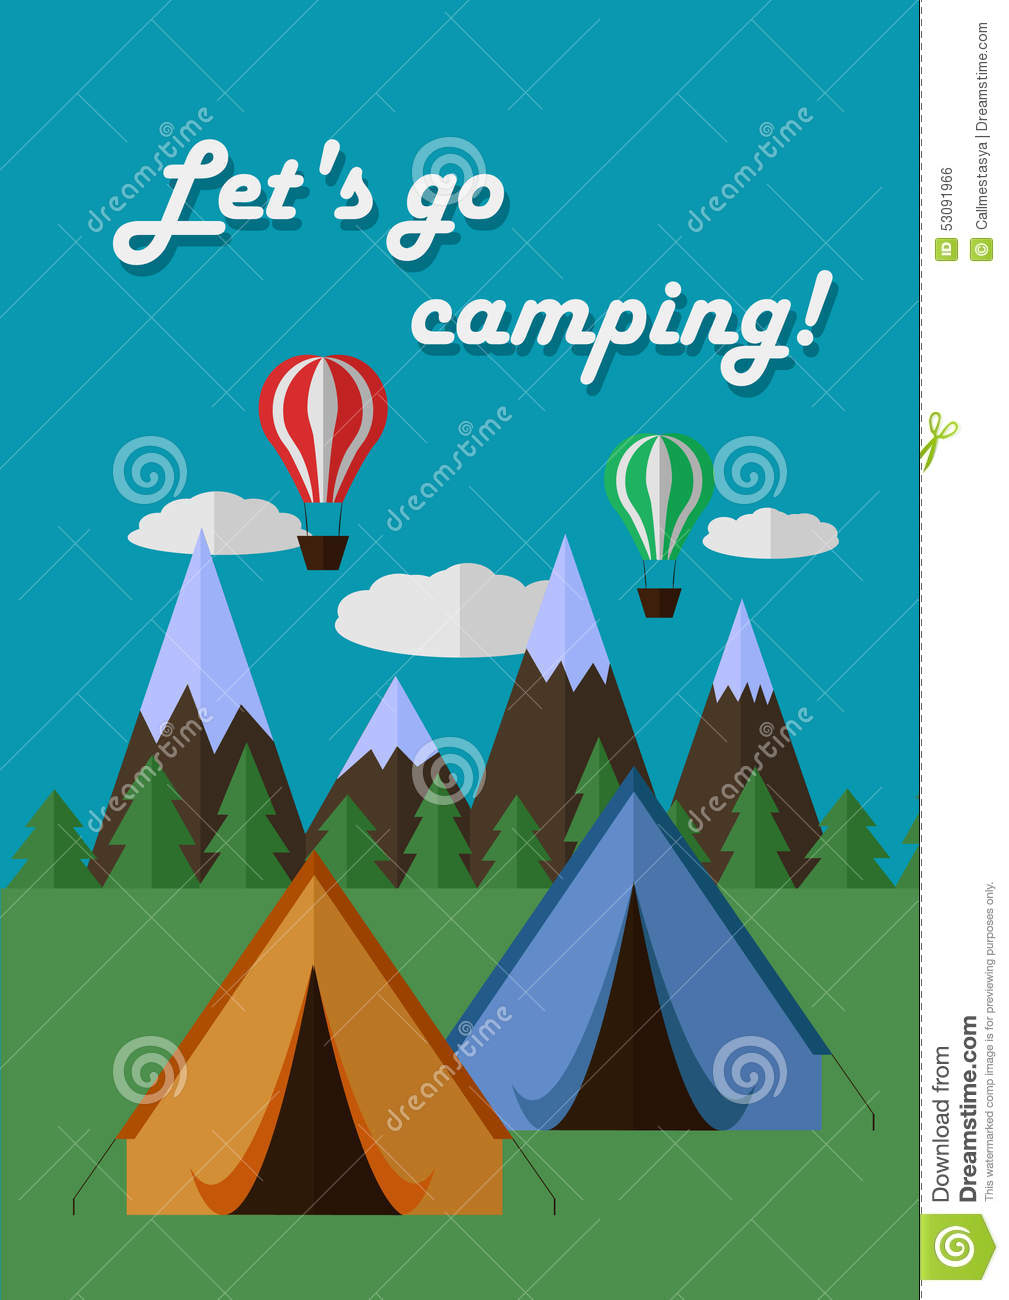 Camping Poster Images